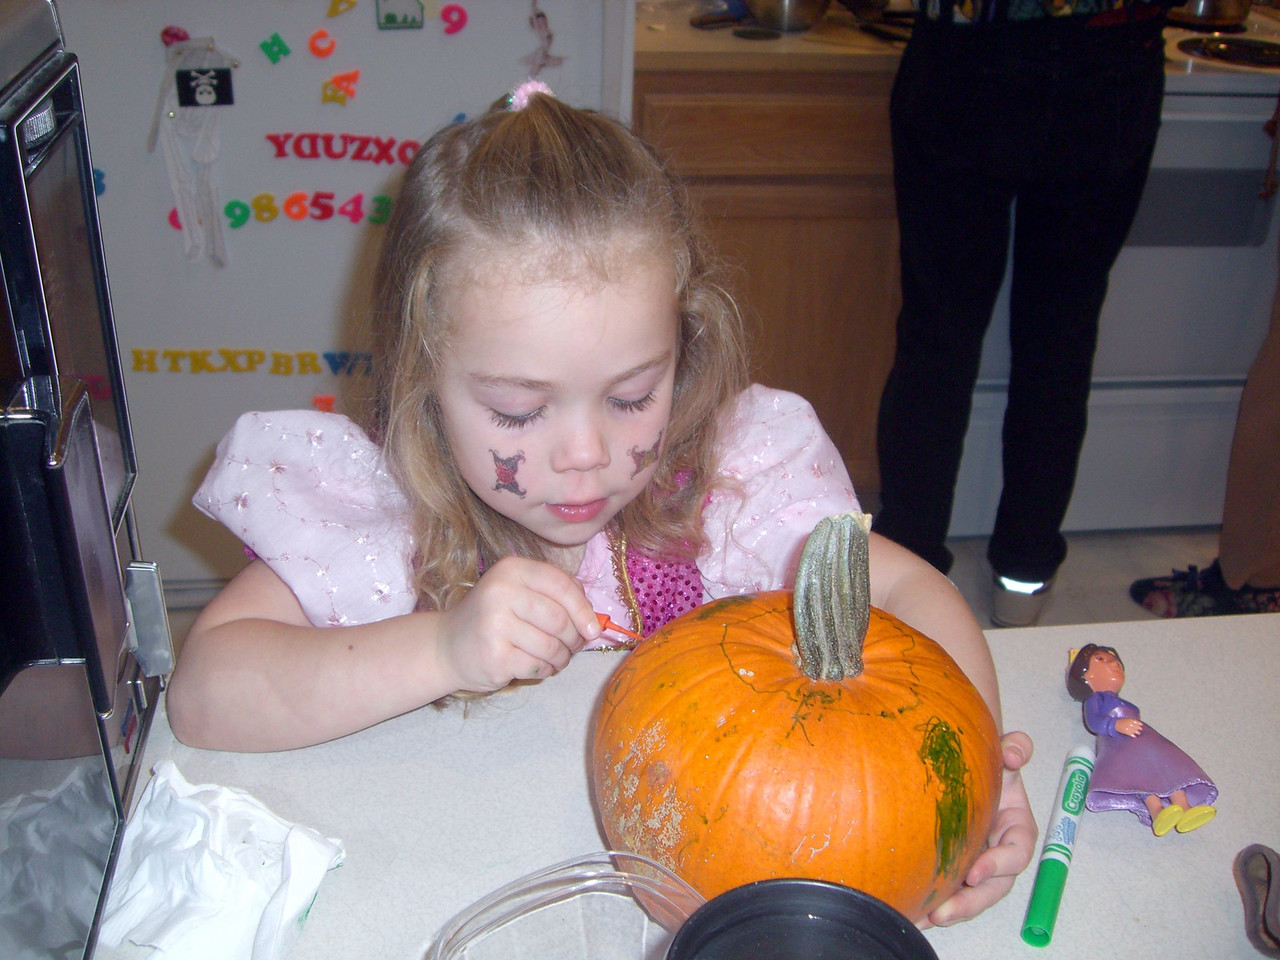 Halloween '08 - carving pumpkins